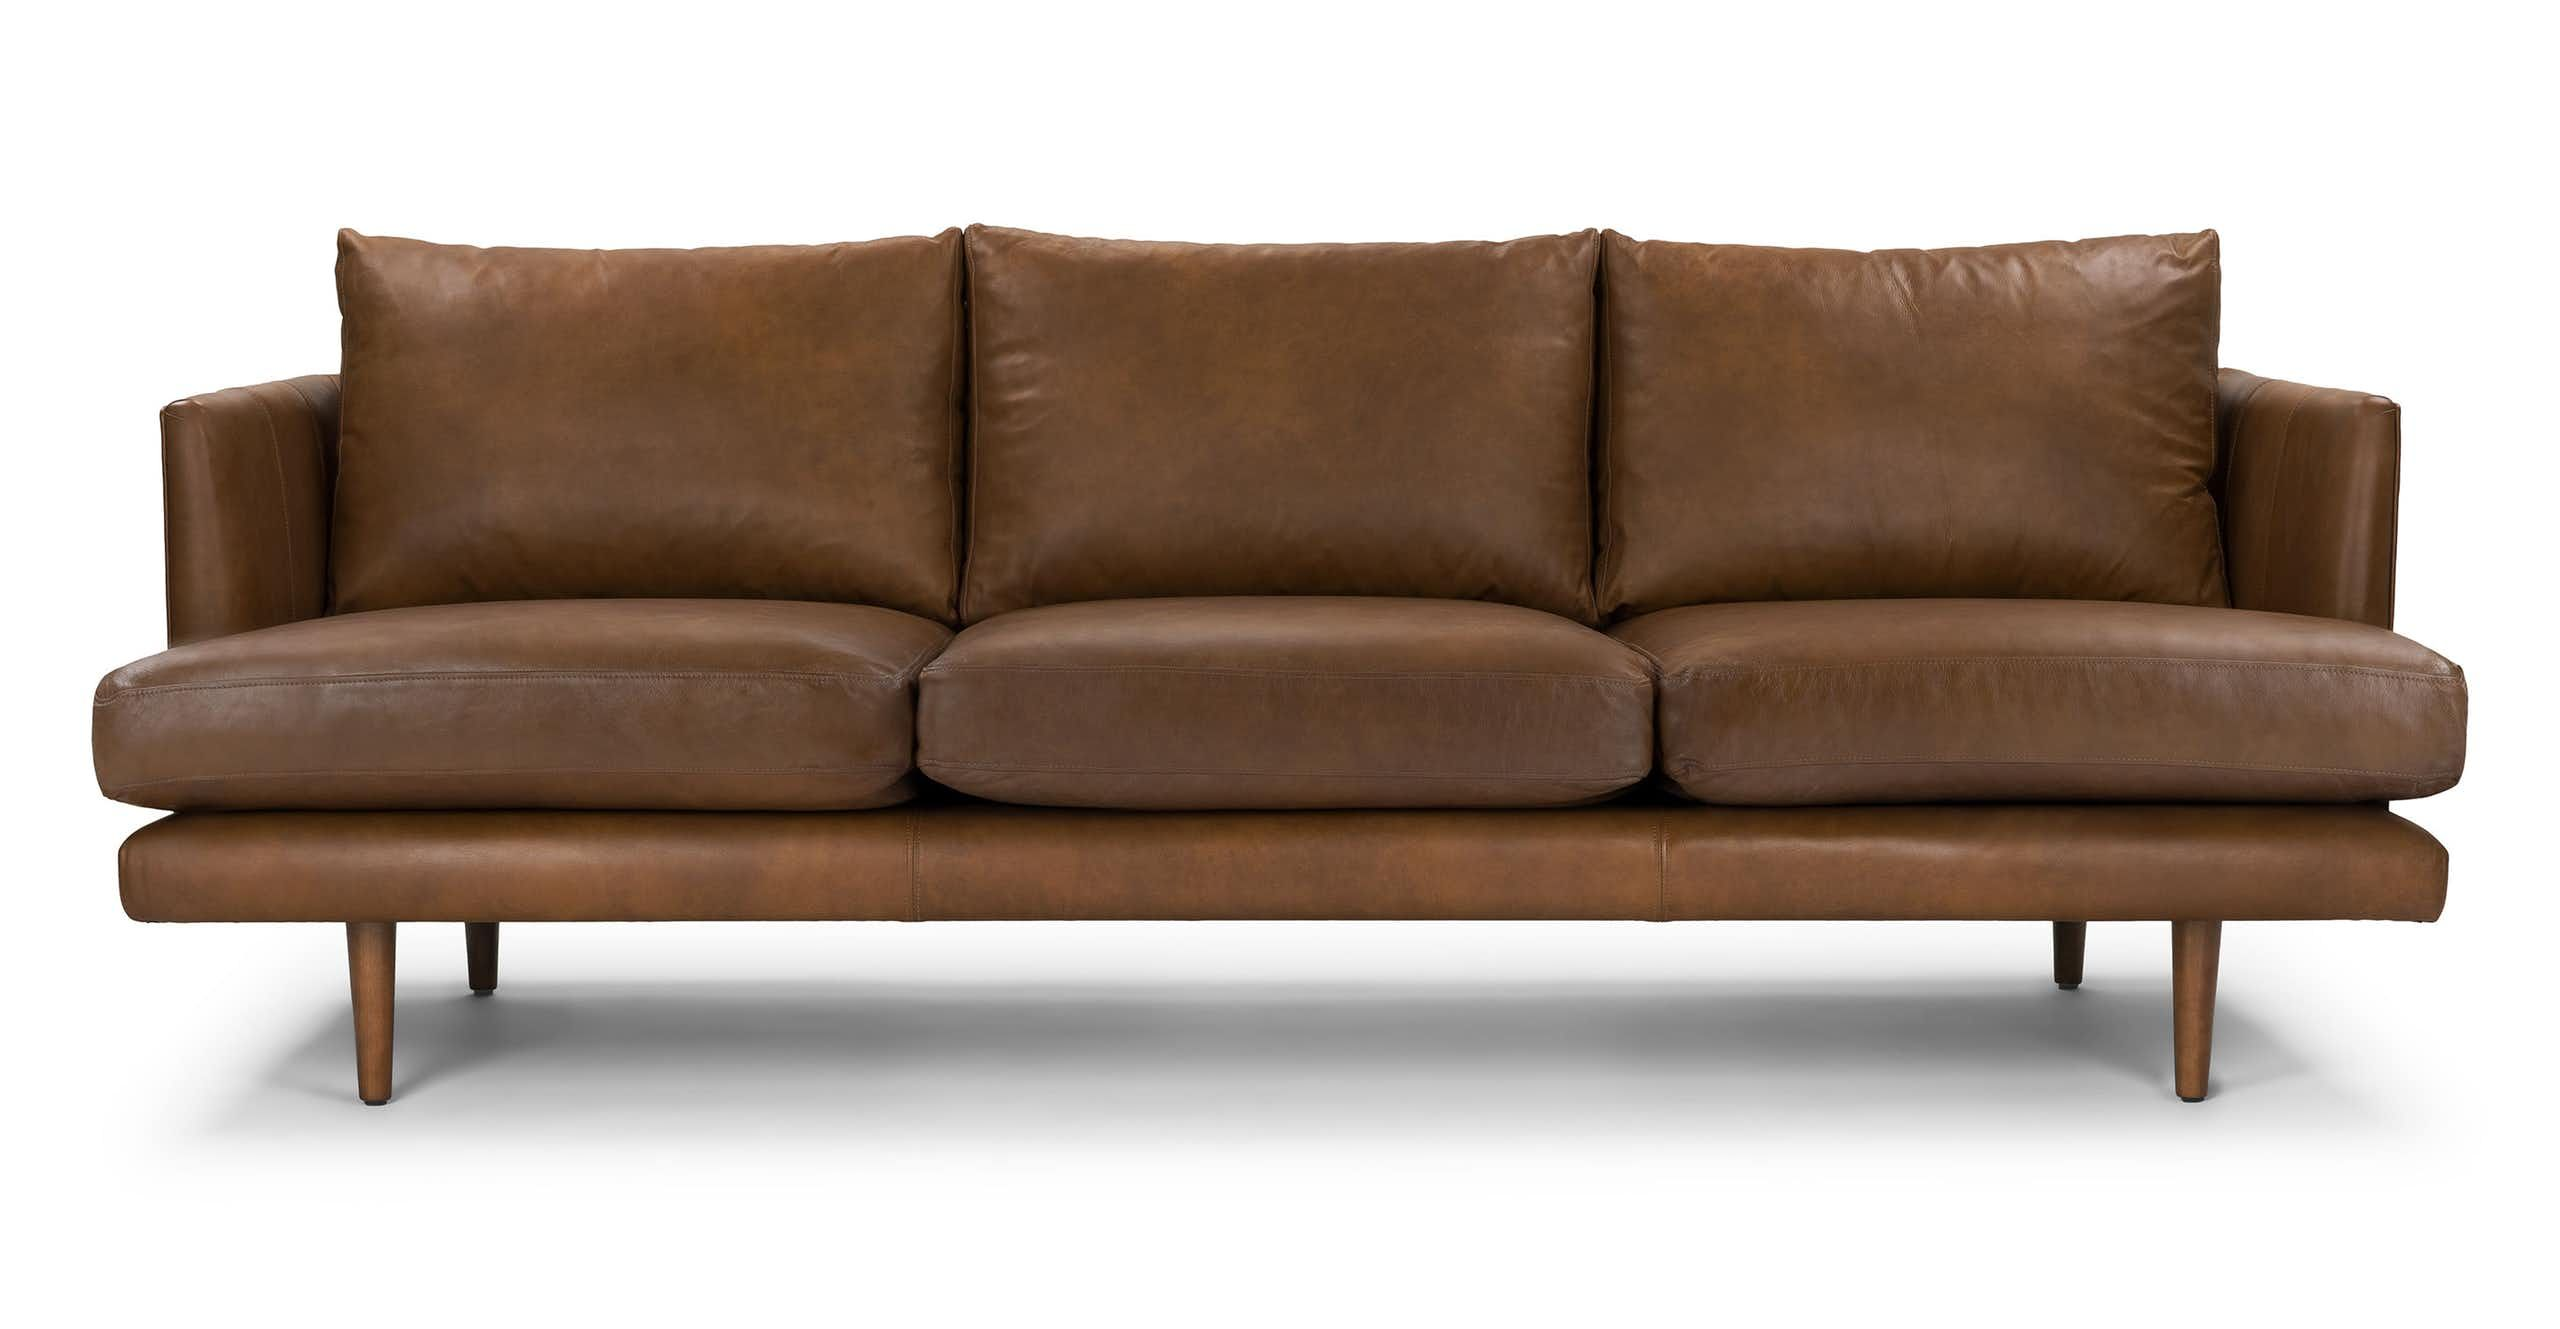 Burrard Bella Tan Sofa Portland Traditional